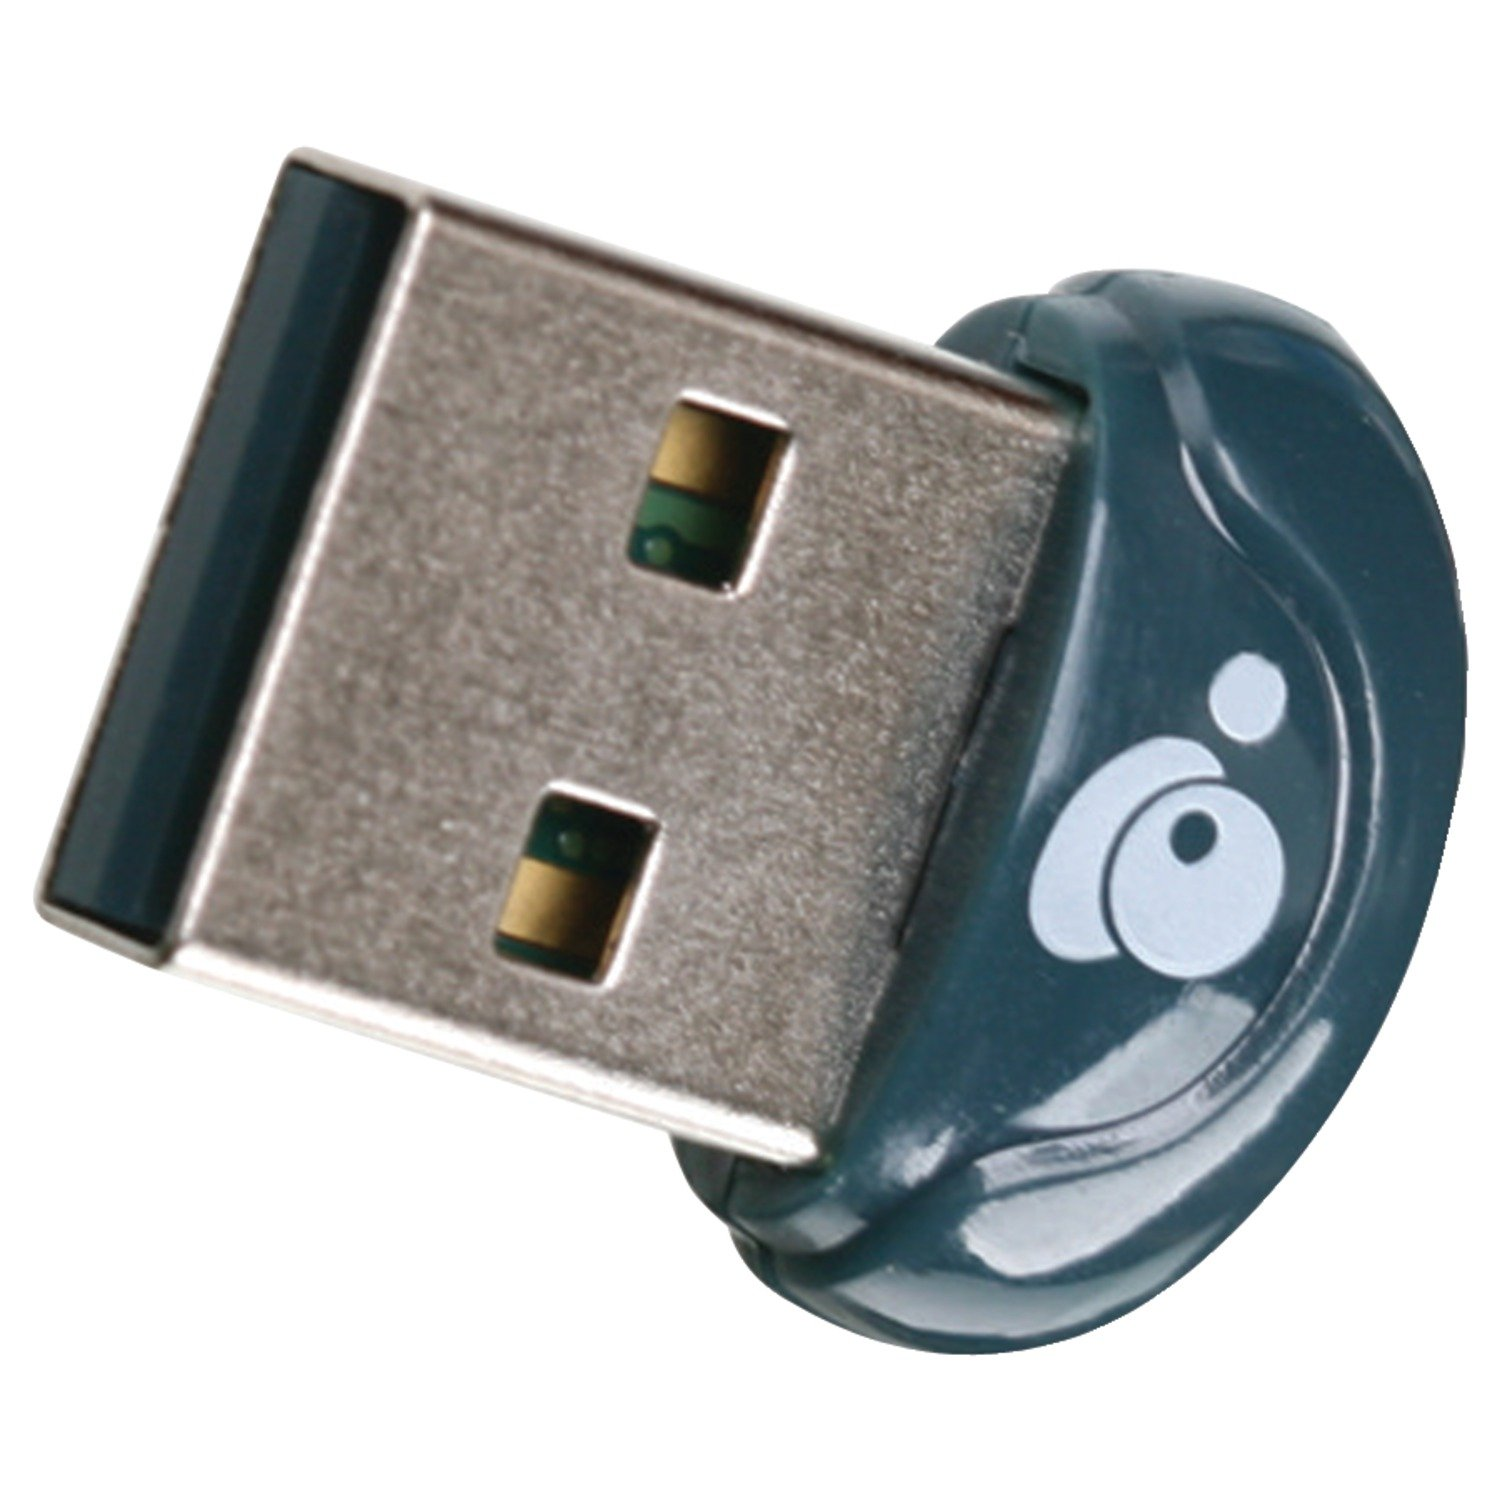 IOGEAR Bluetooth 4.0 USB Micro Adapter, GBU521 by IOGEAR